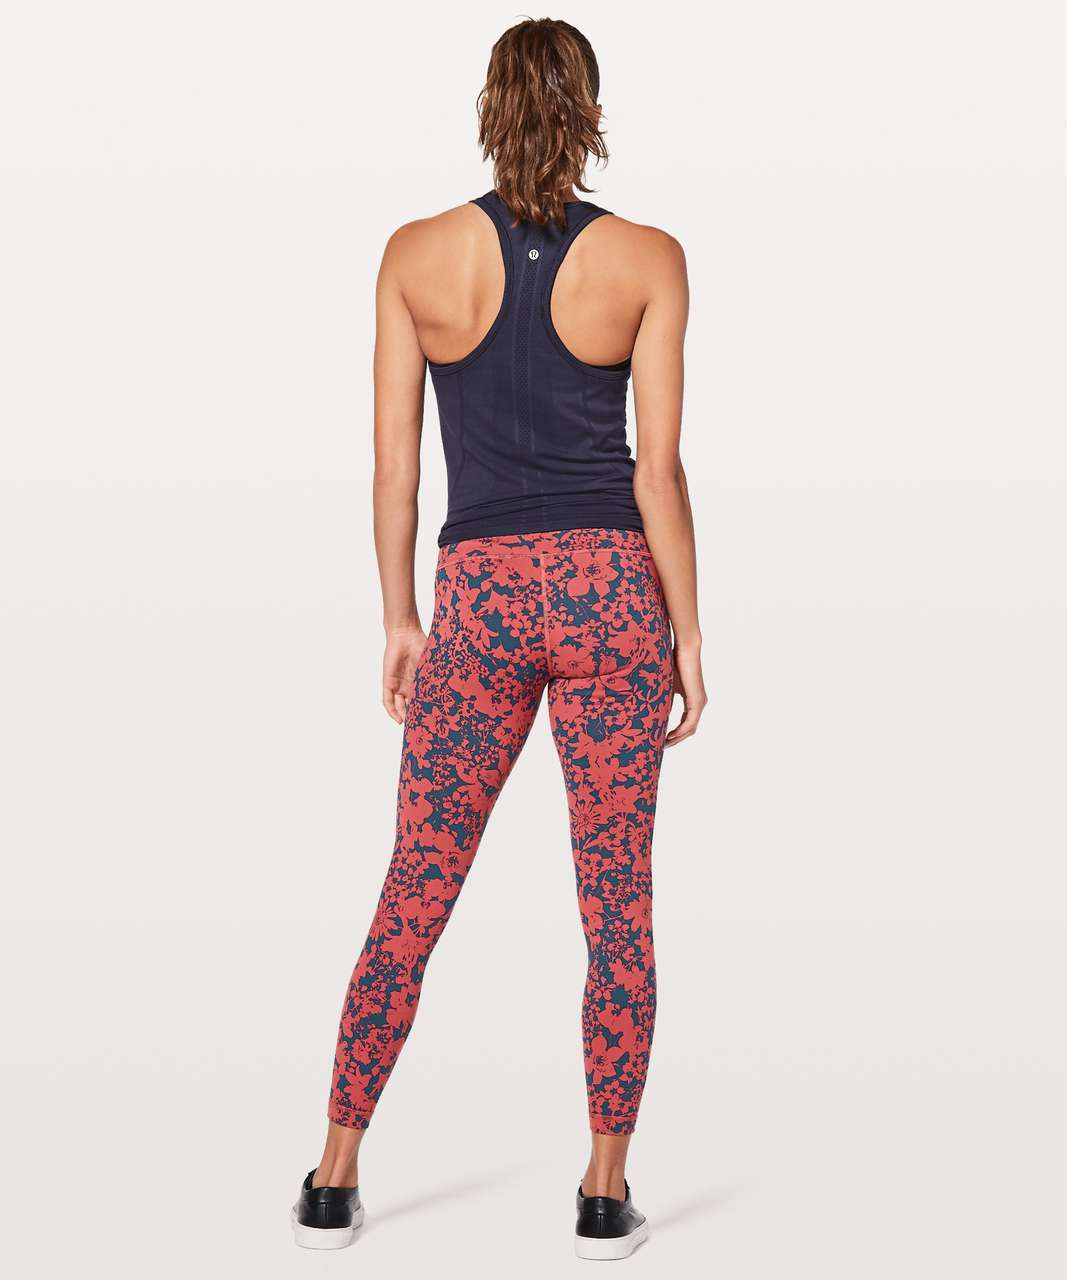 "Lululemon Wunder Under Hi-Rise 7/8 Tight *Full-On Luon 25"" - Efflorescent Dark Canyon Onyx Blue"